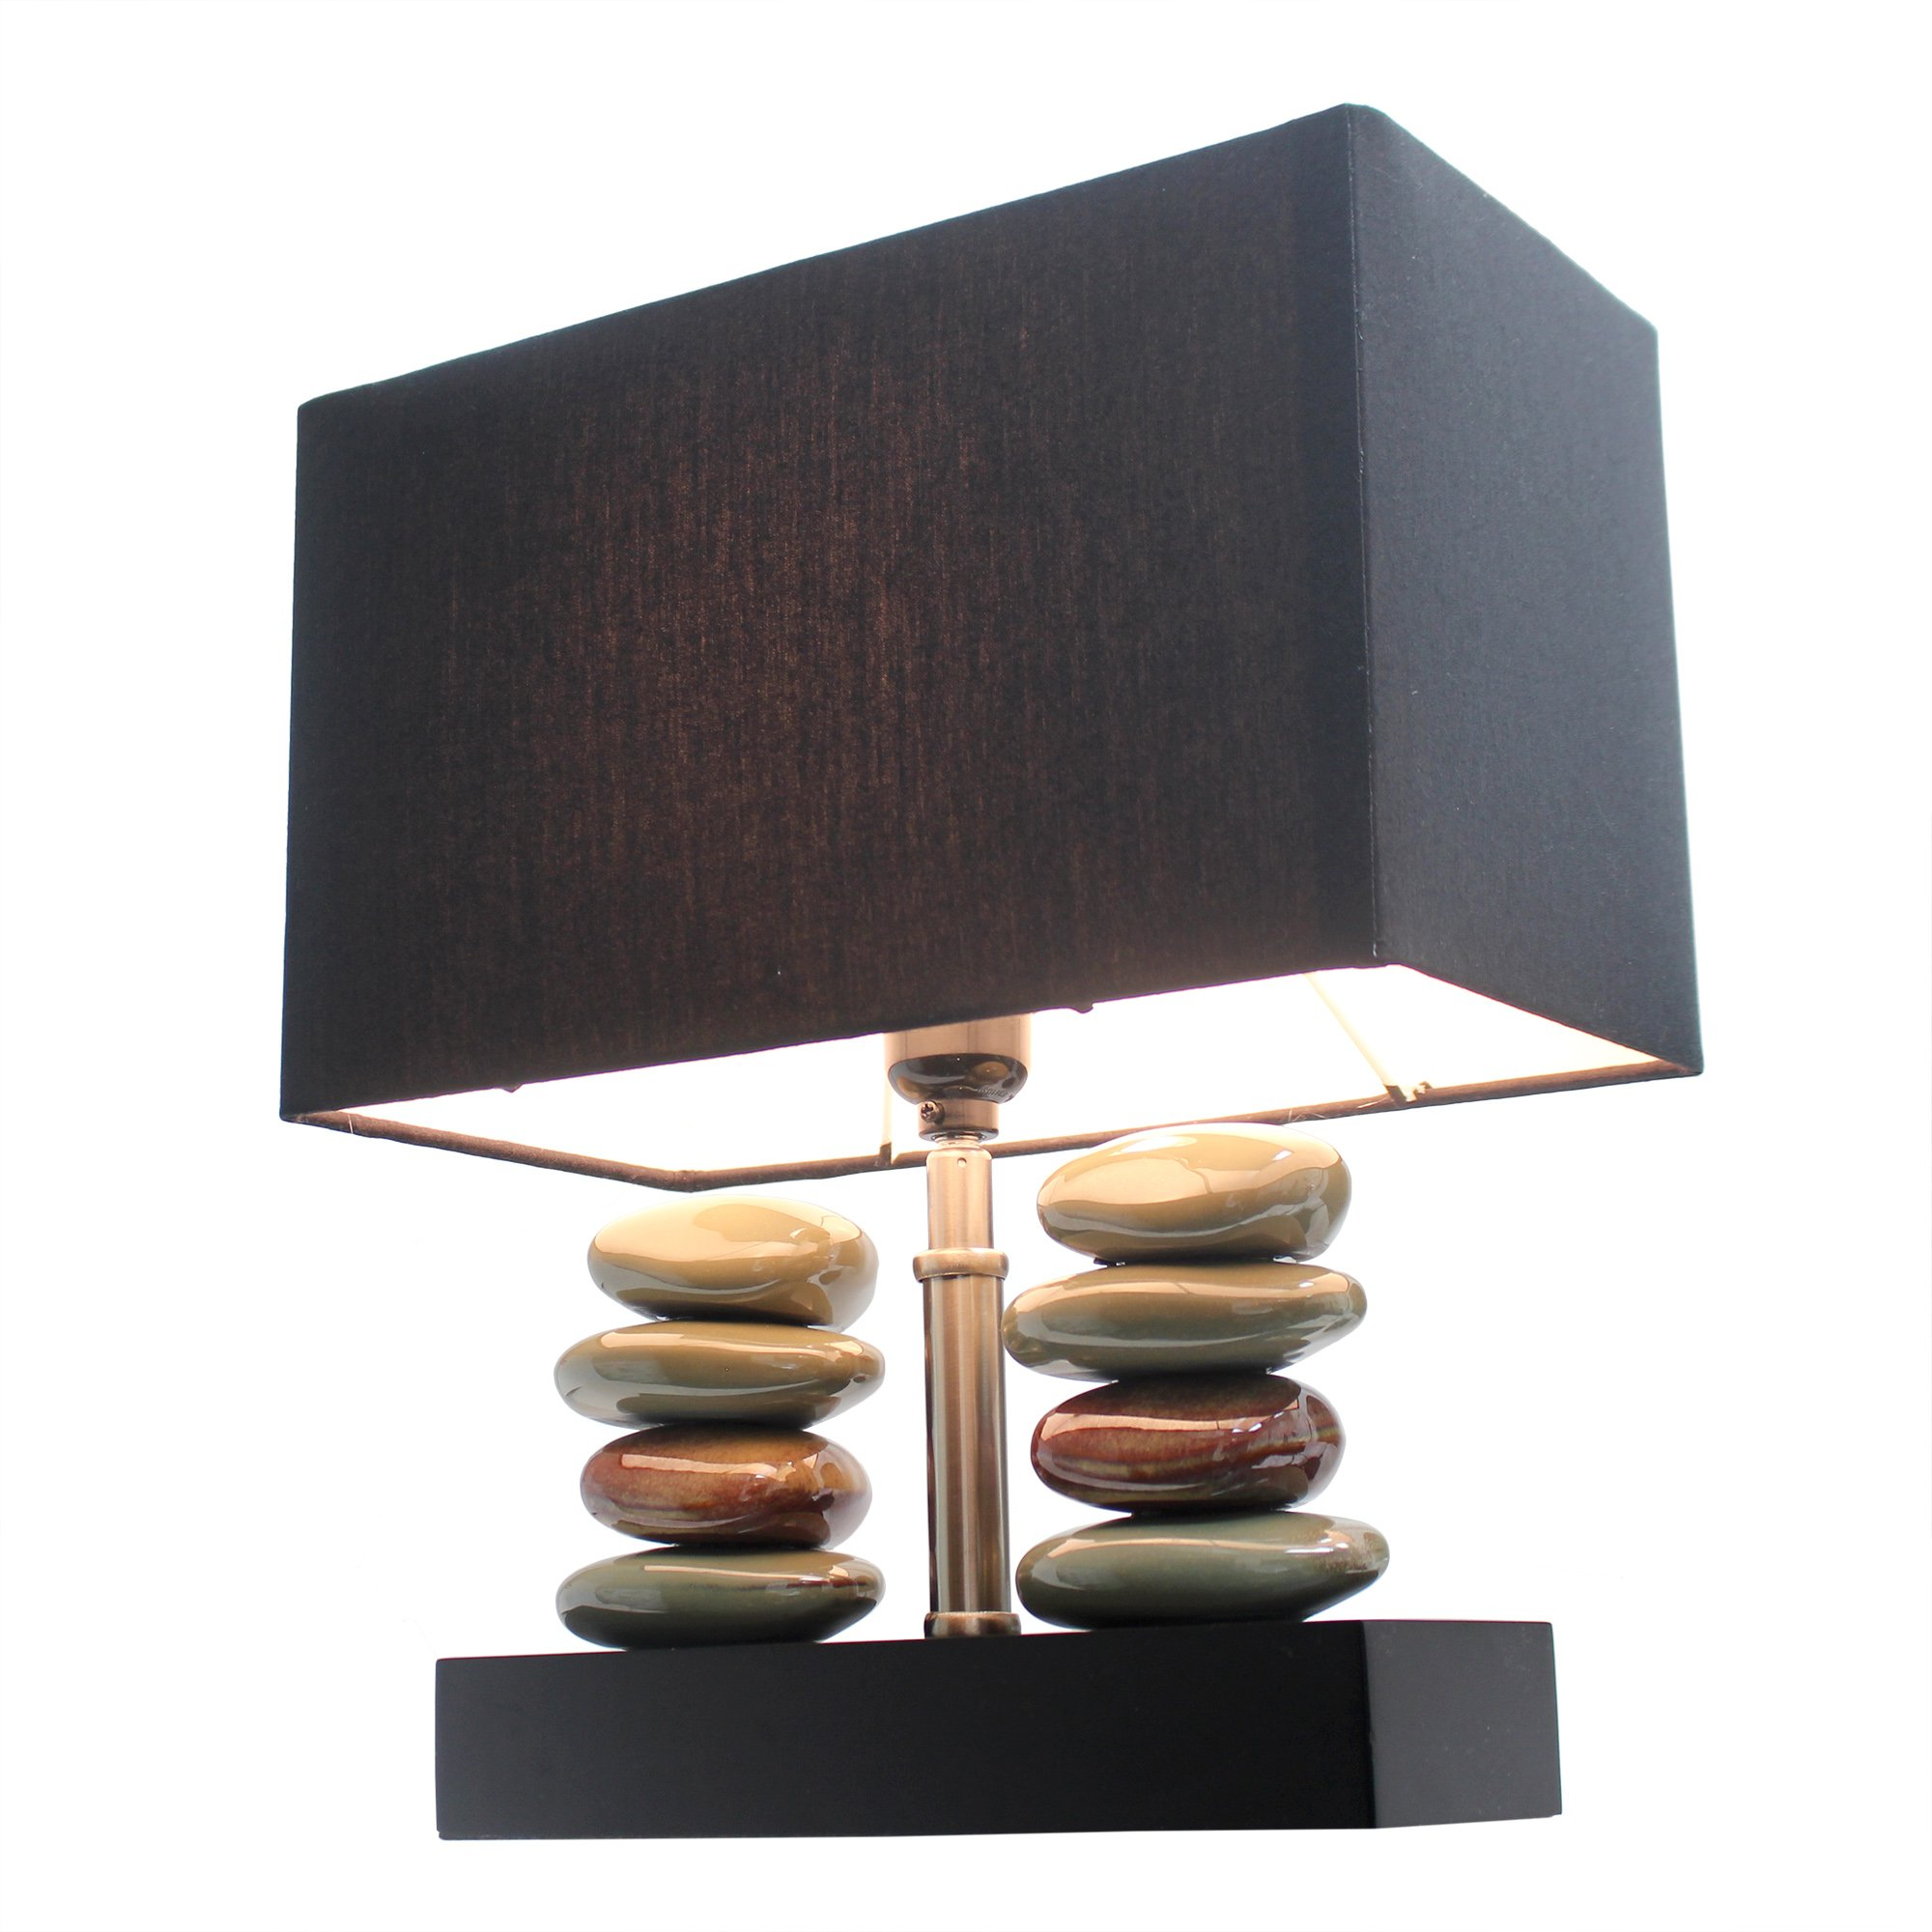 "Elegant Designs LT1036-BLK Rectangular Dual Stacked Stone Ceramic Table Lamp, 14.5"" x 12"" x 6.3"", Black"